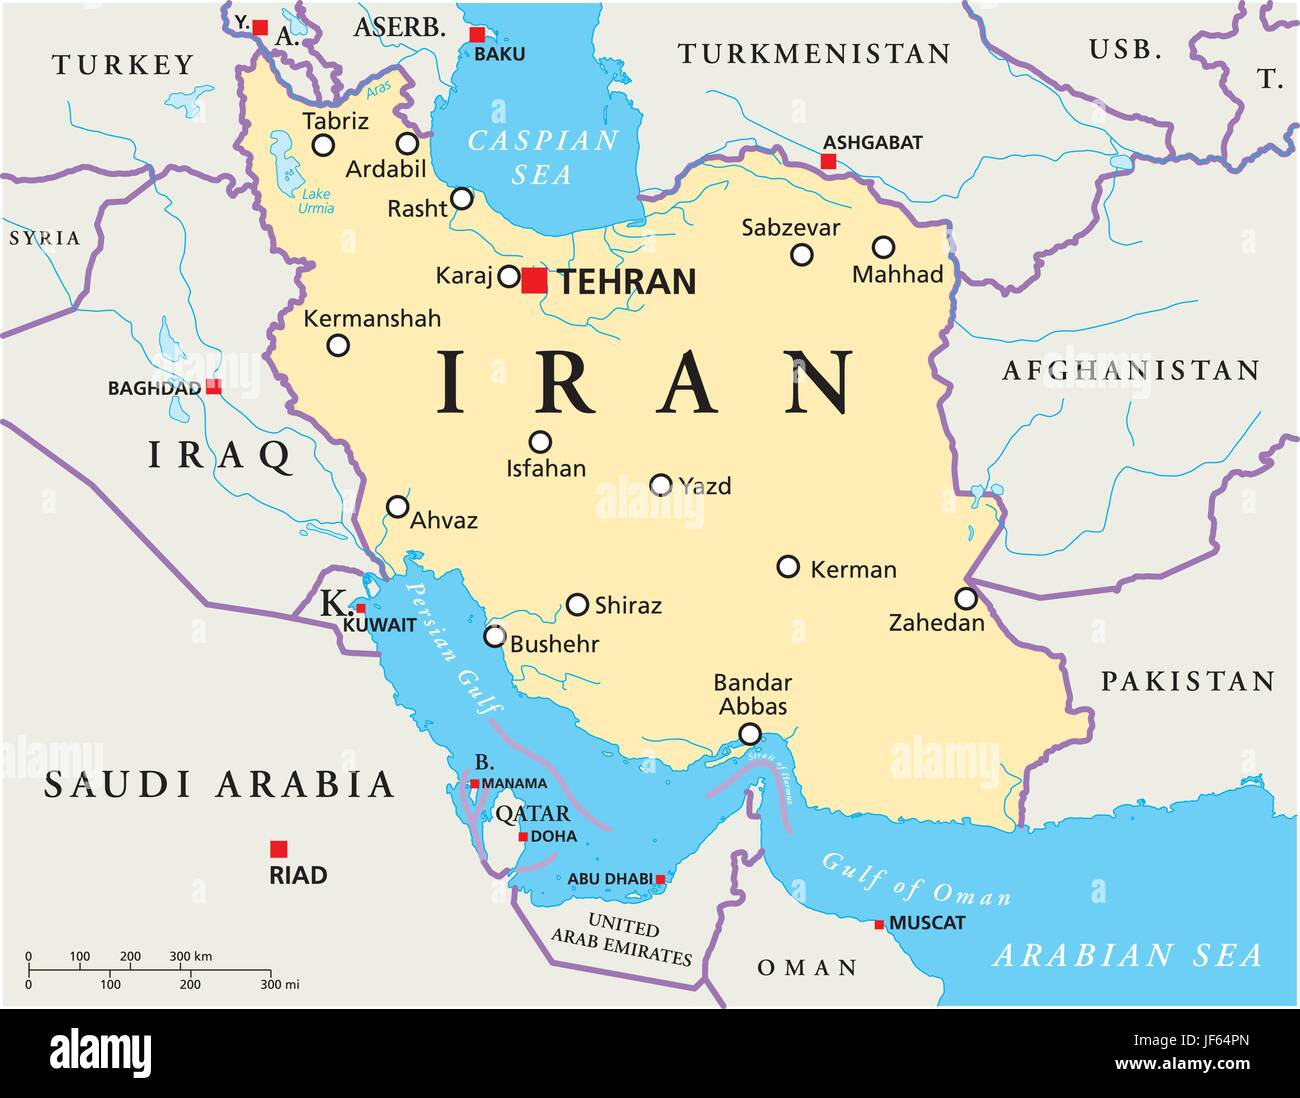 Iran Persia Map Atlas Map Of The World Political Arab Iran